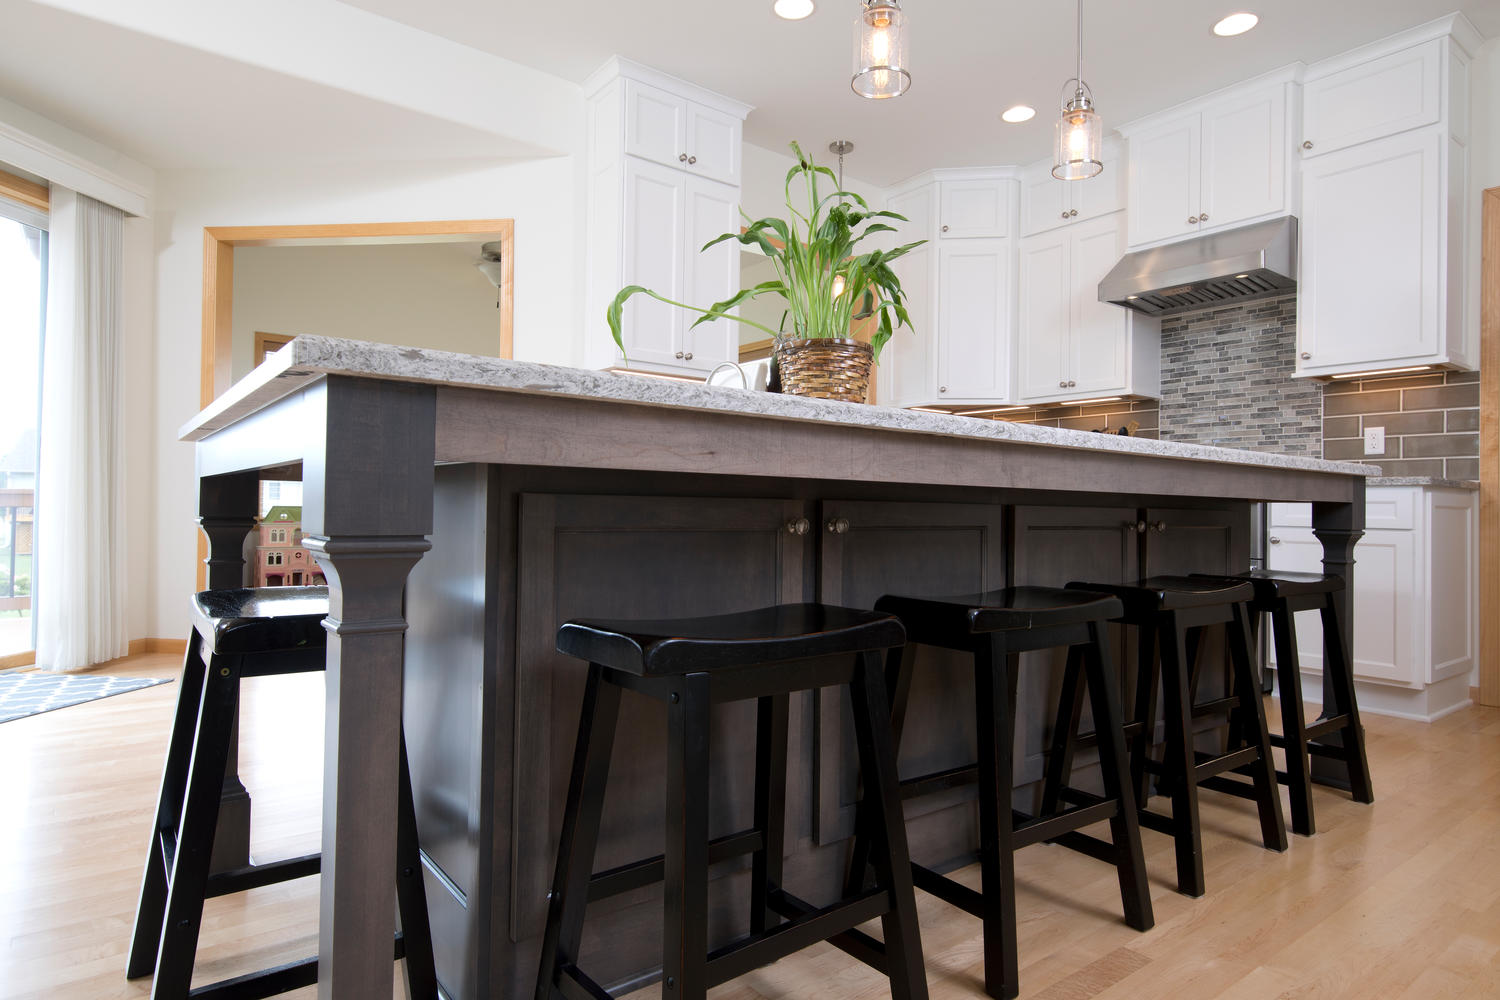 Kitchens - The Cabinet Store